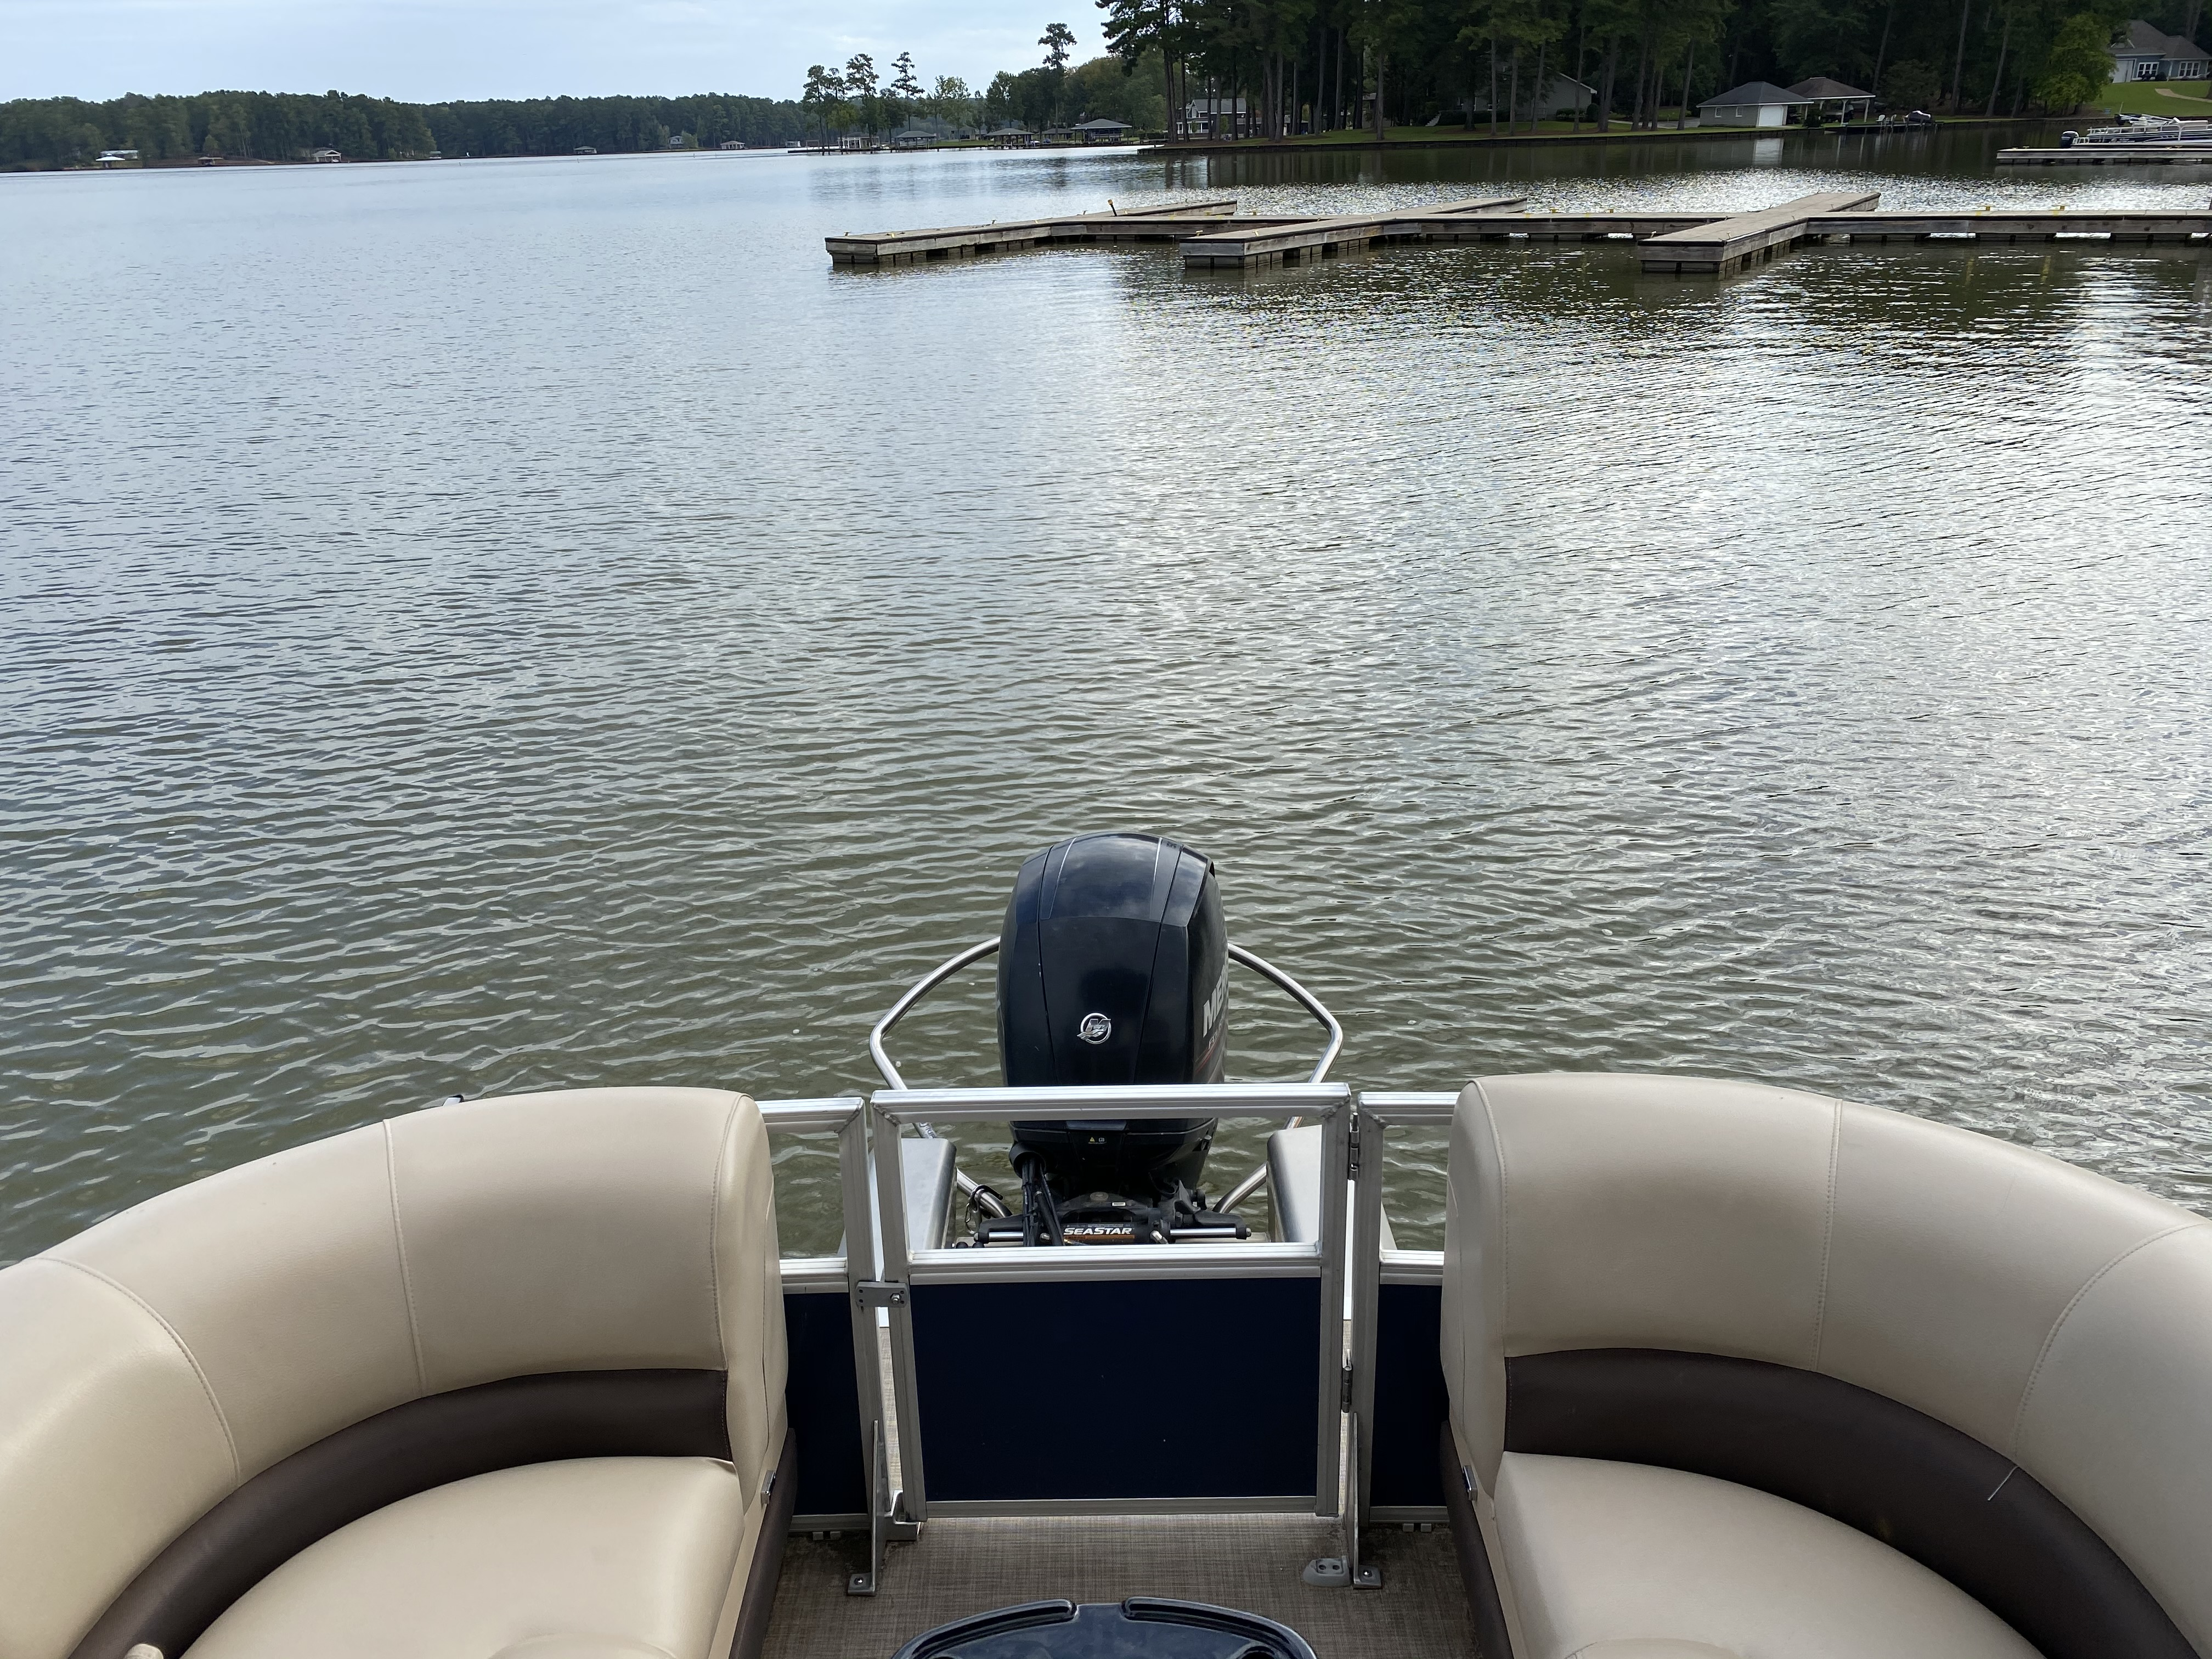 2019 Sun Tracker boat for sale, model of the boat is PARTY BARGE 24 XP3 w/ Mercury 150Hp 4S & Image # 14 of 24